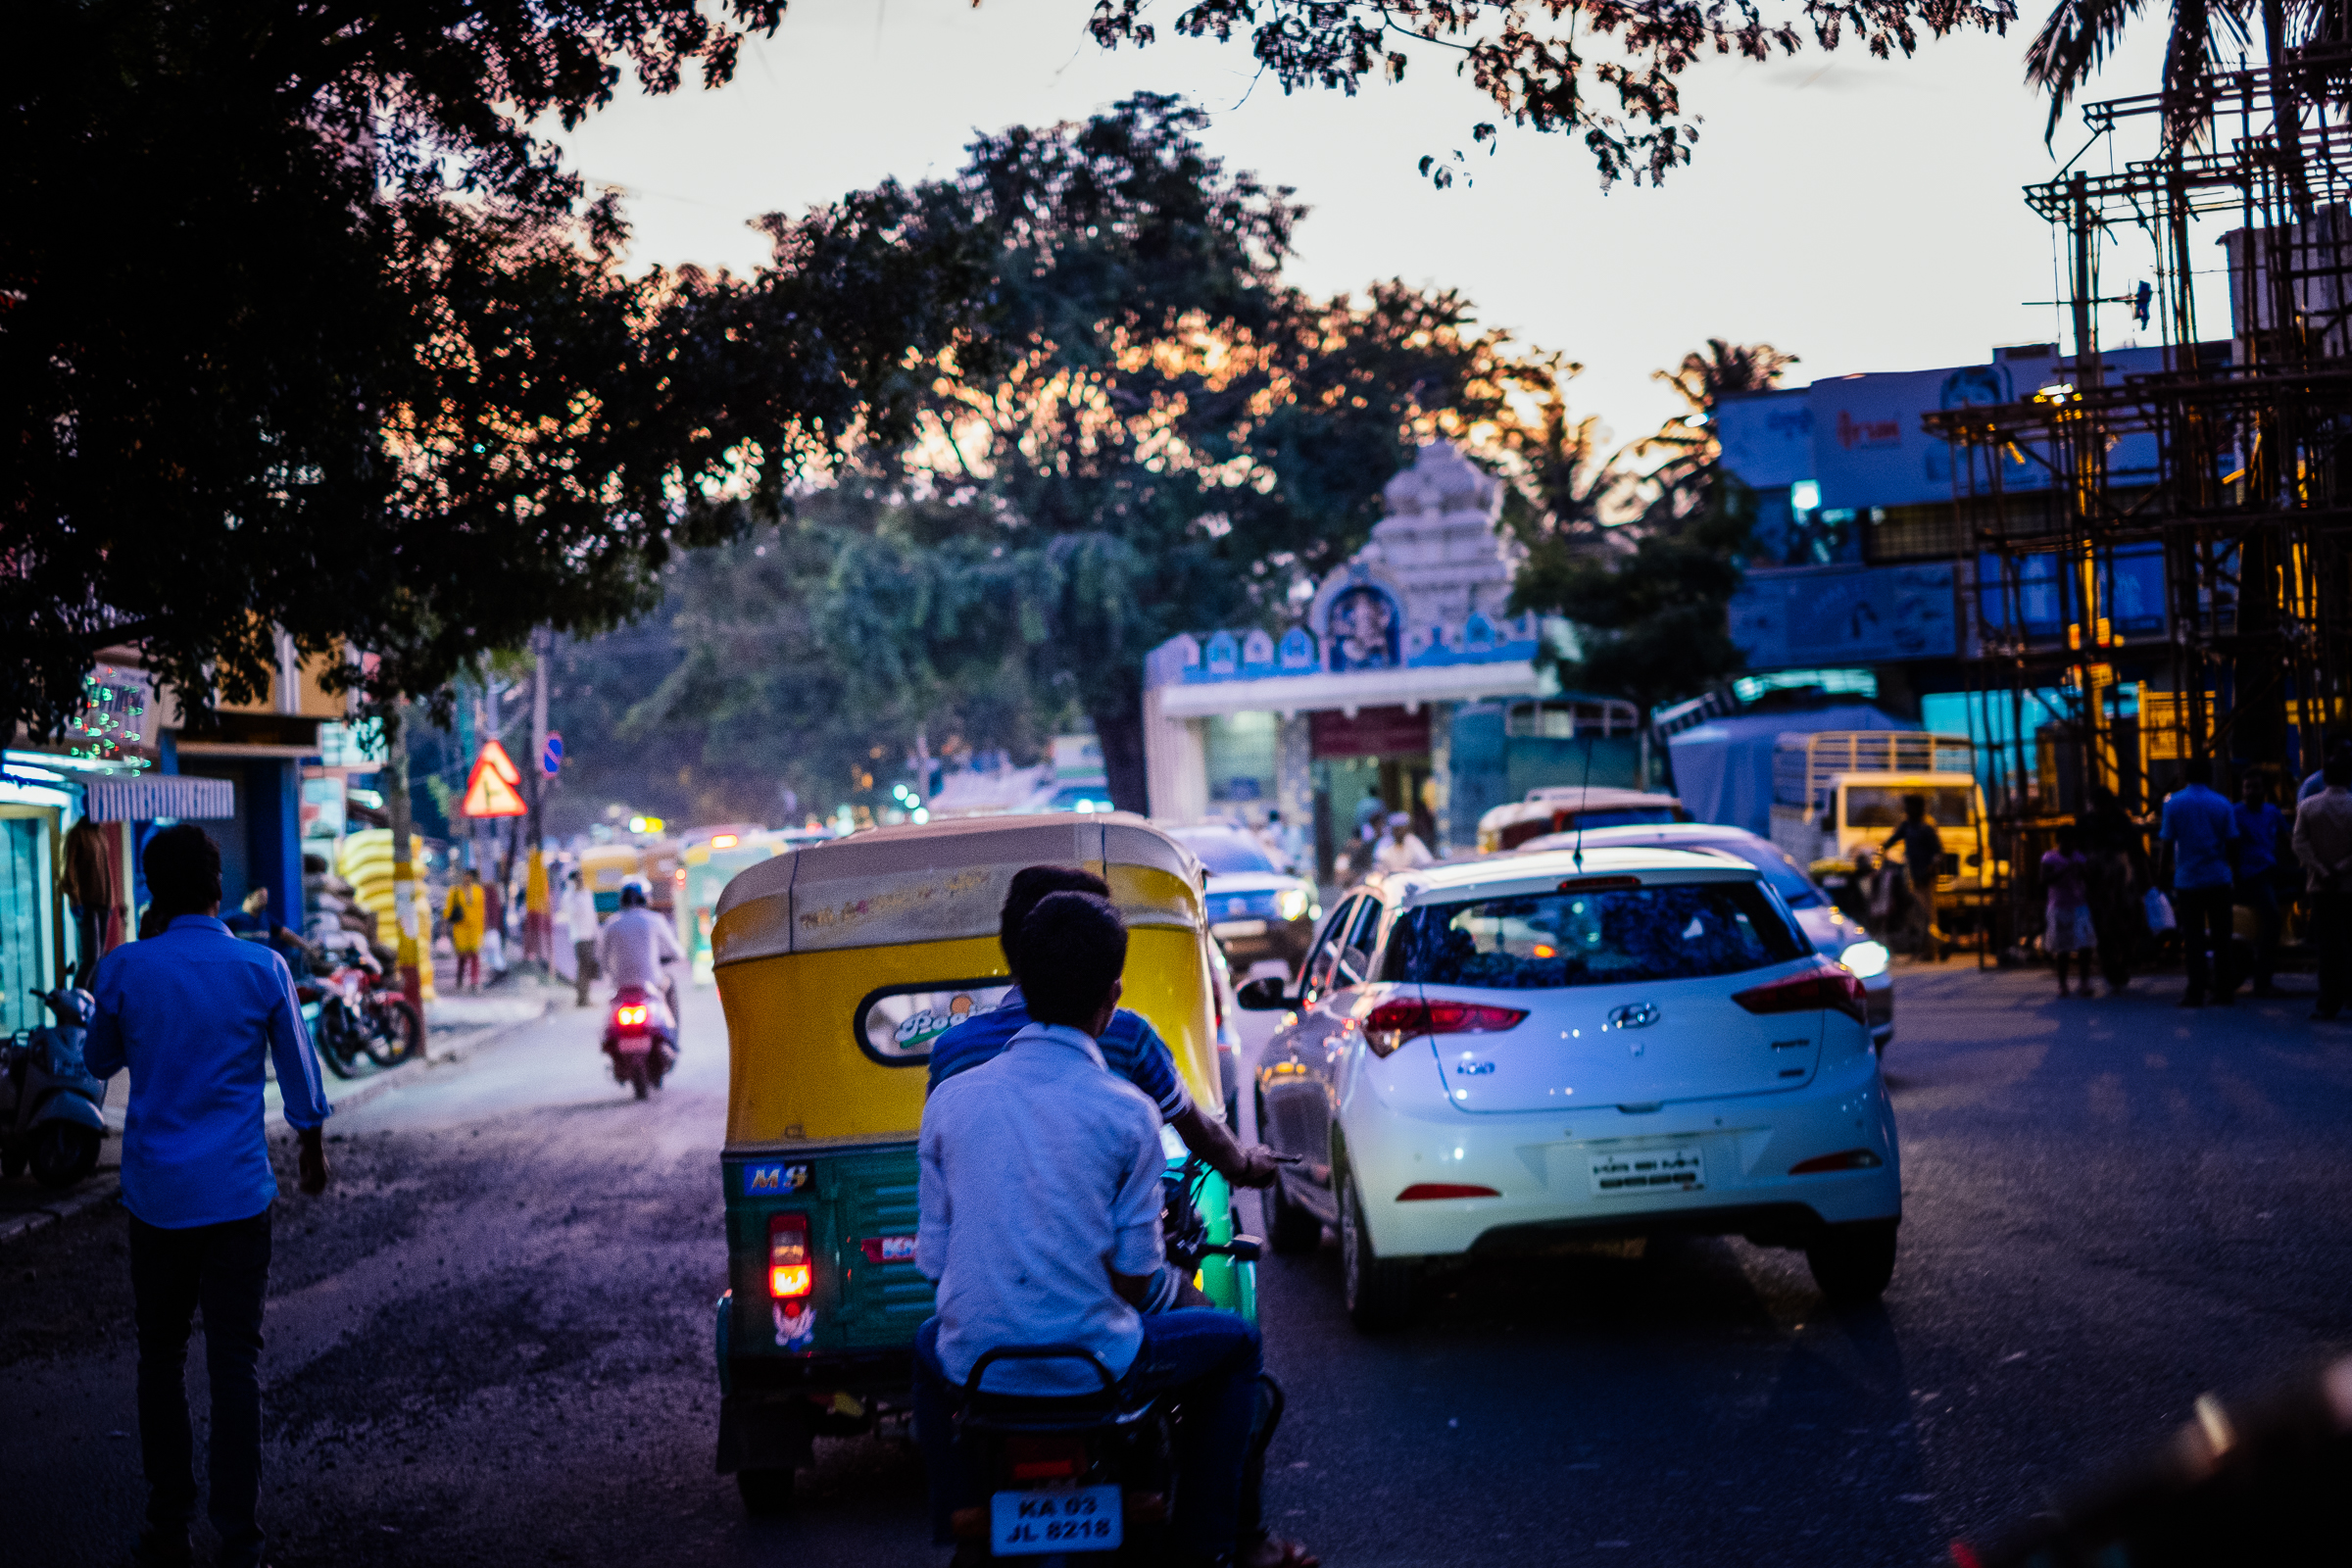 Check out the key learnings from our second week on the ground in Bangalore, testing our 7 prototypes